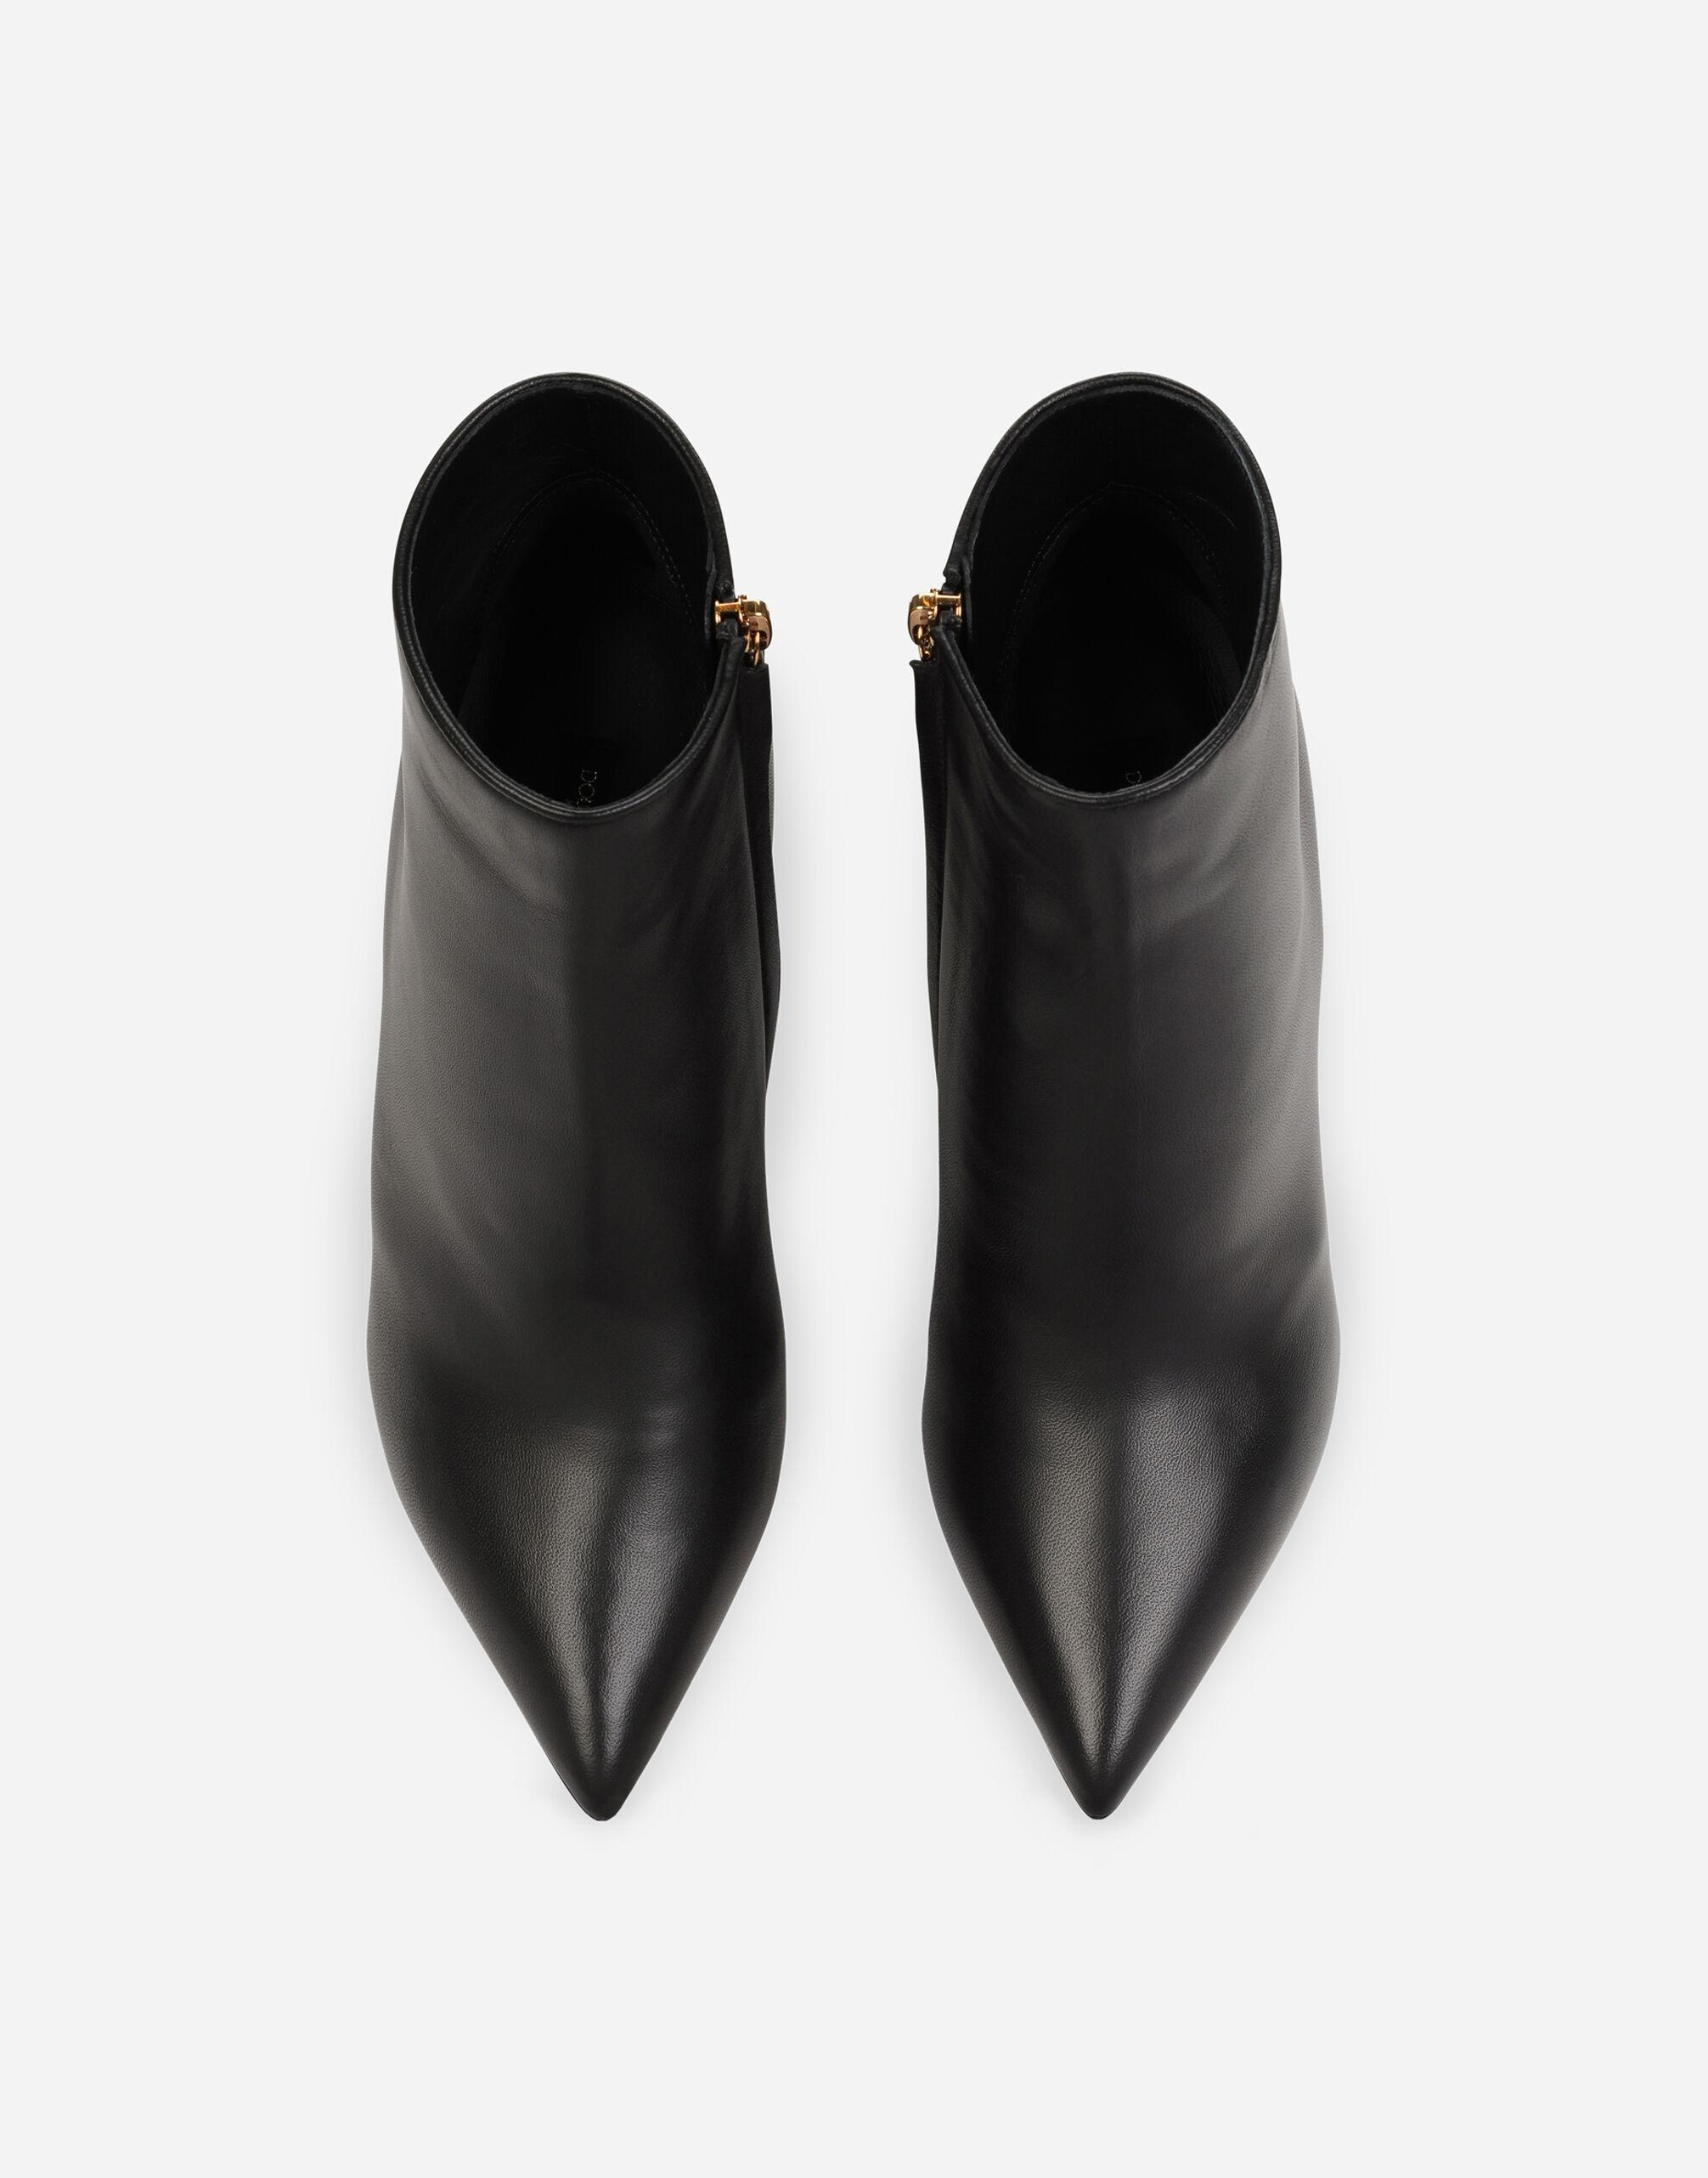 Nappa leather ankle boots with DG heel 3